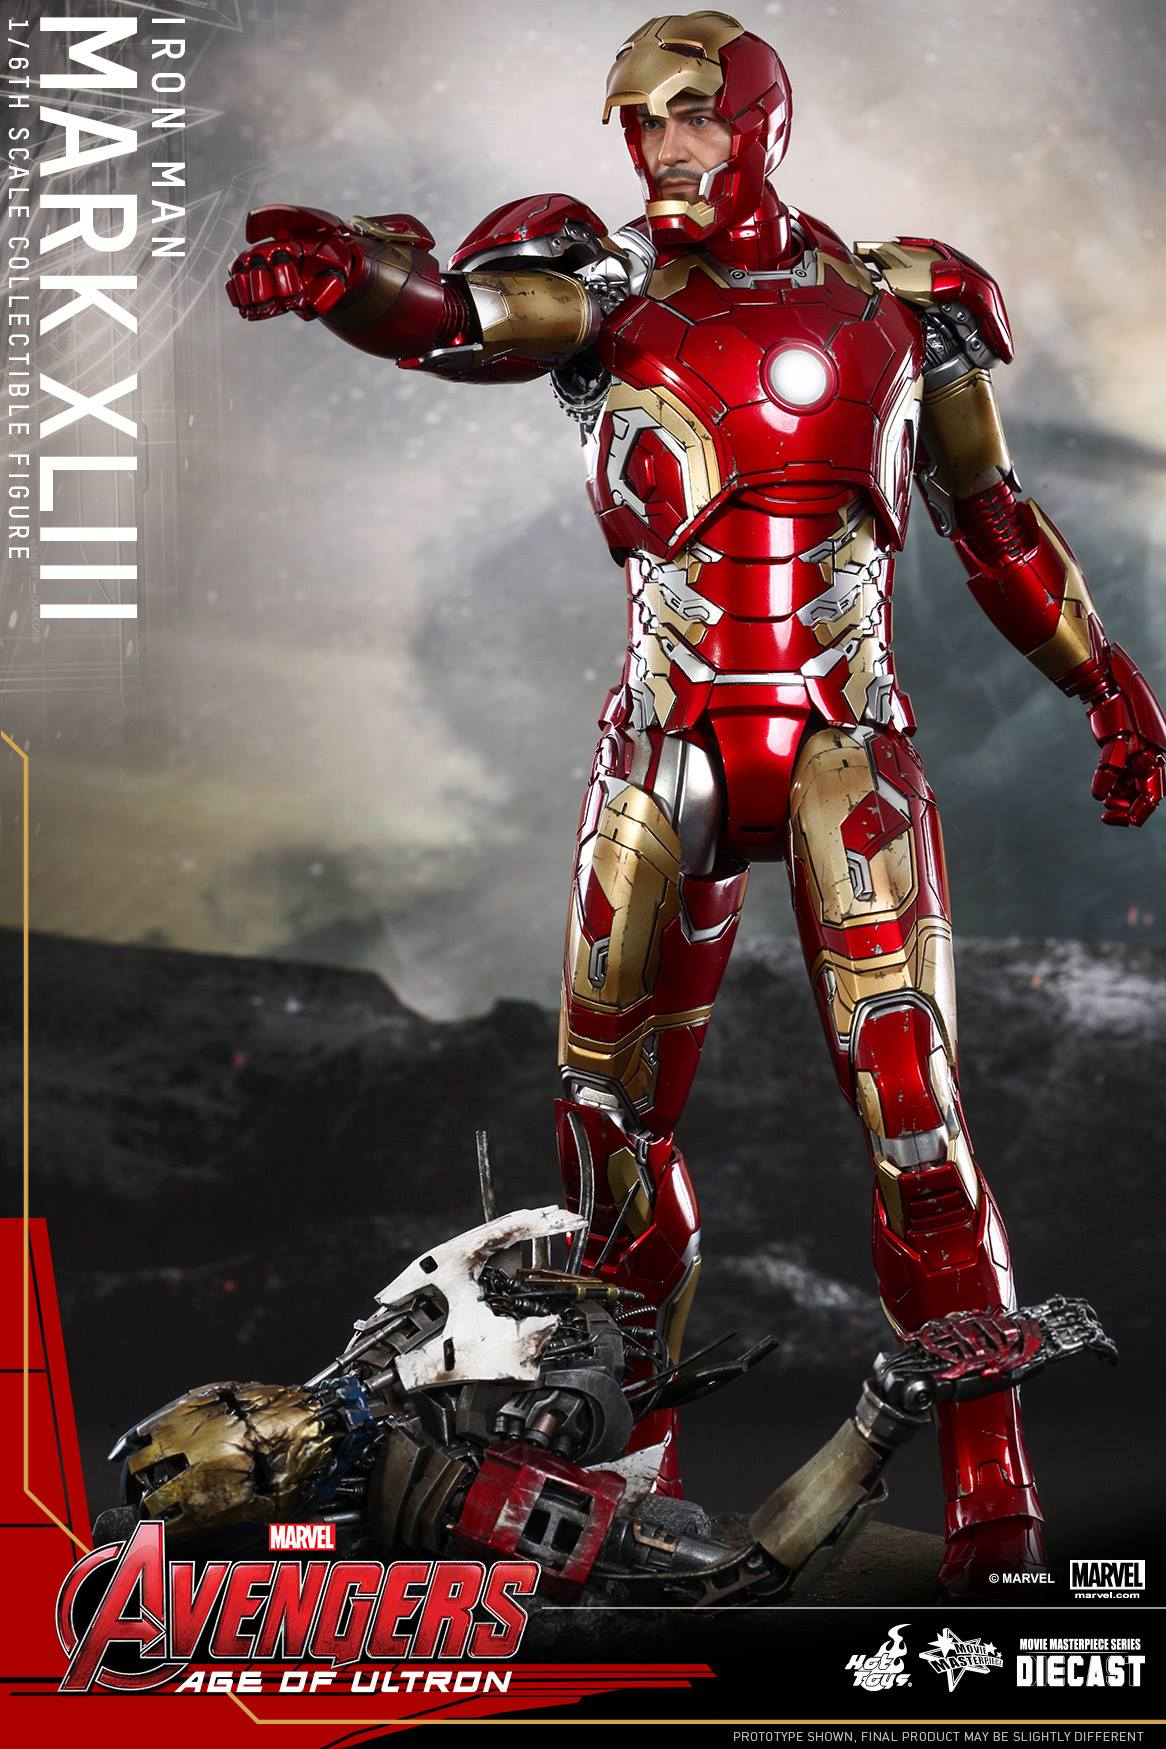 The Avengers: Hot Toys' Avengers: Age Of Ultron Iron Man Suit Revealed